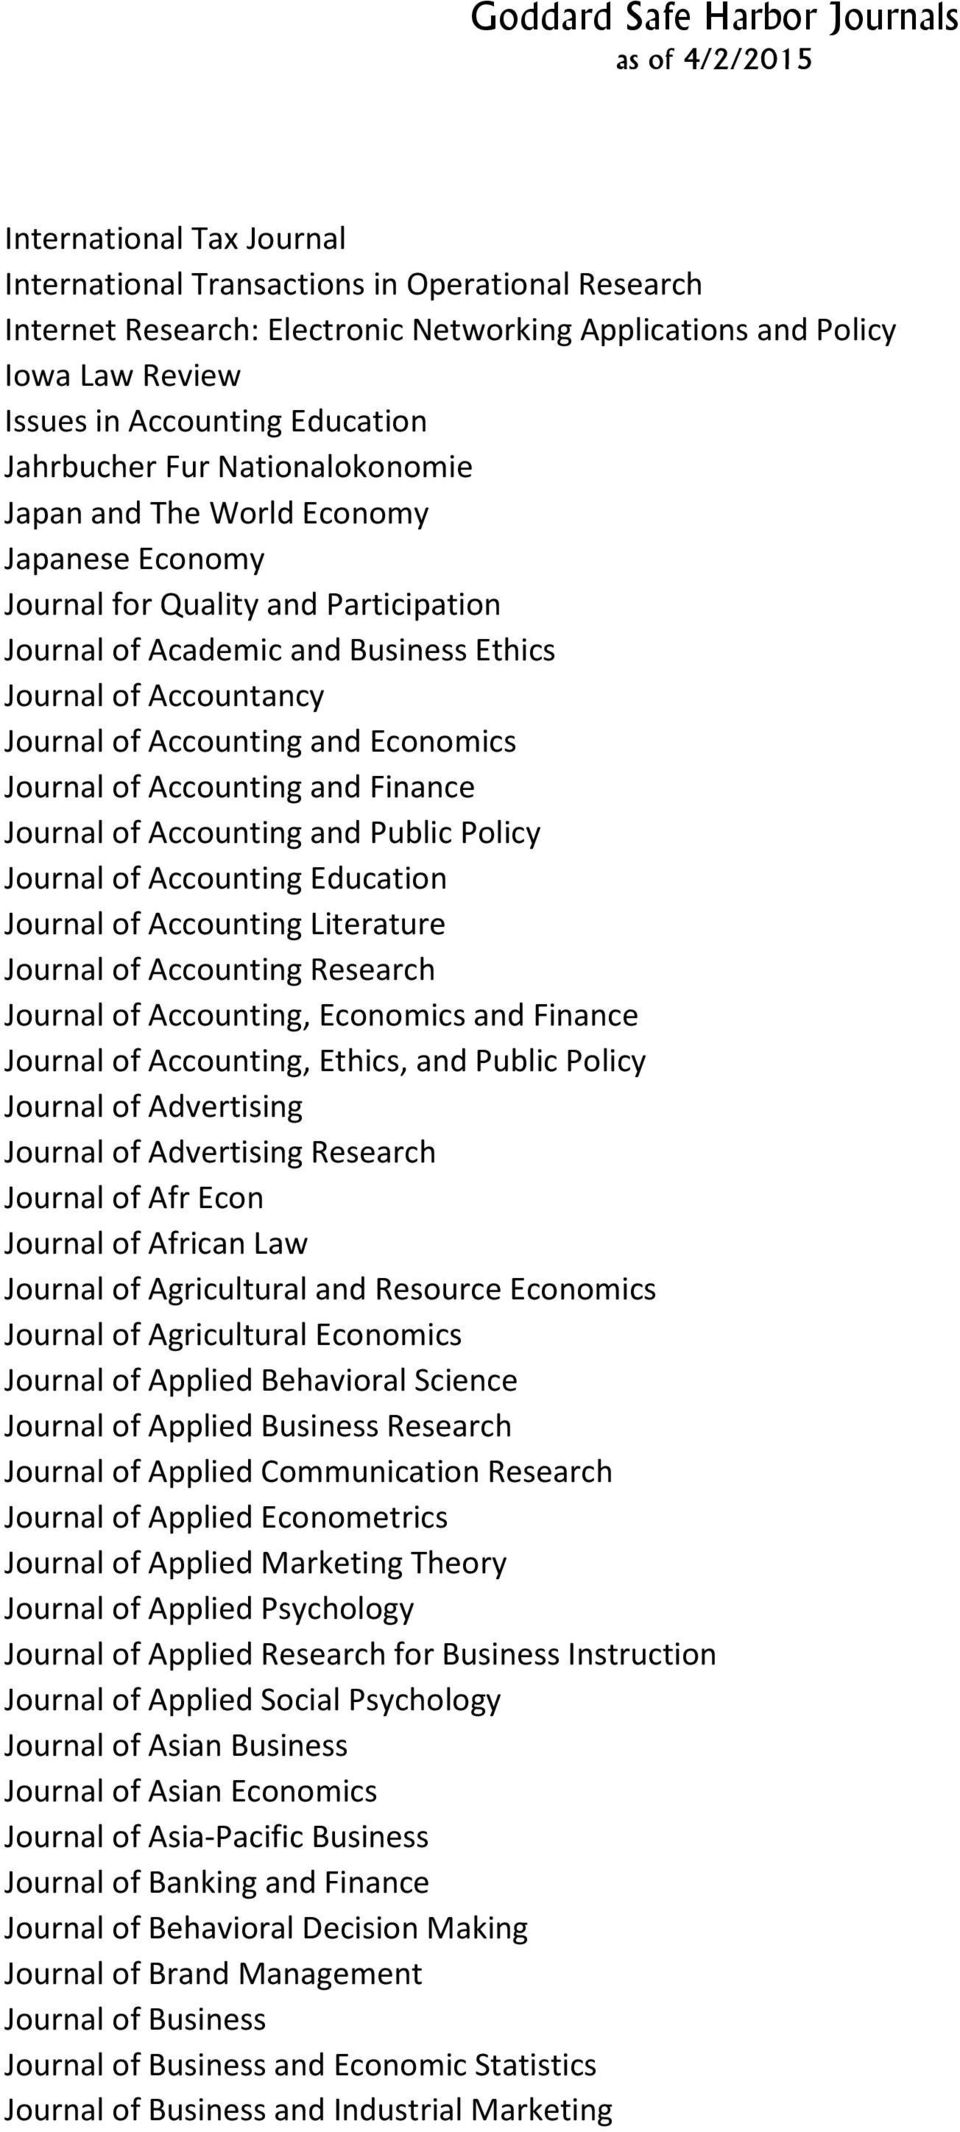 Economics Journal of Accounting and Finance Journal of Accounting and Public Policy Journal of Accounting Education Journal of Accounting Literature Journal of Accounting Research Journal of